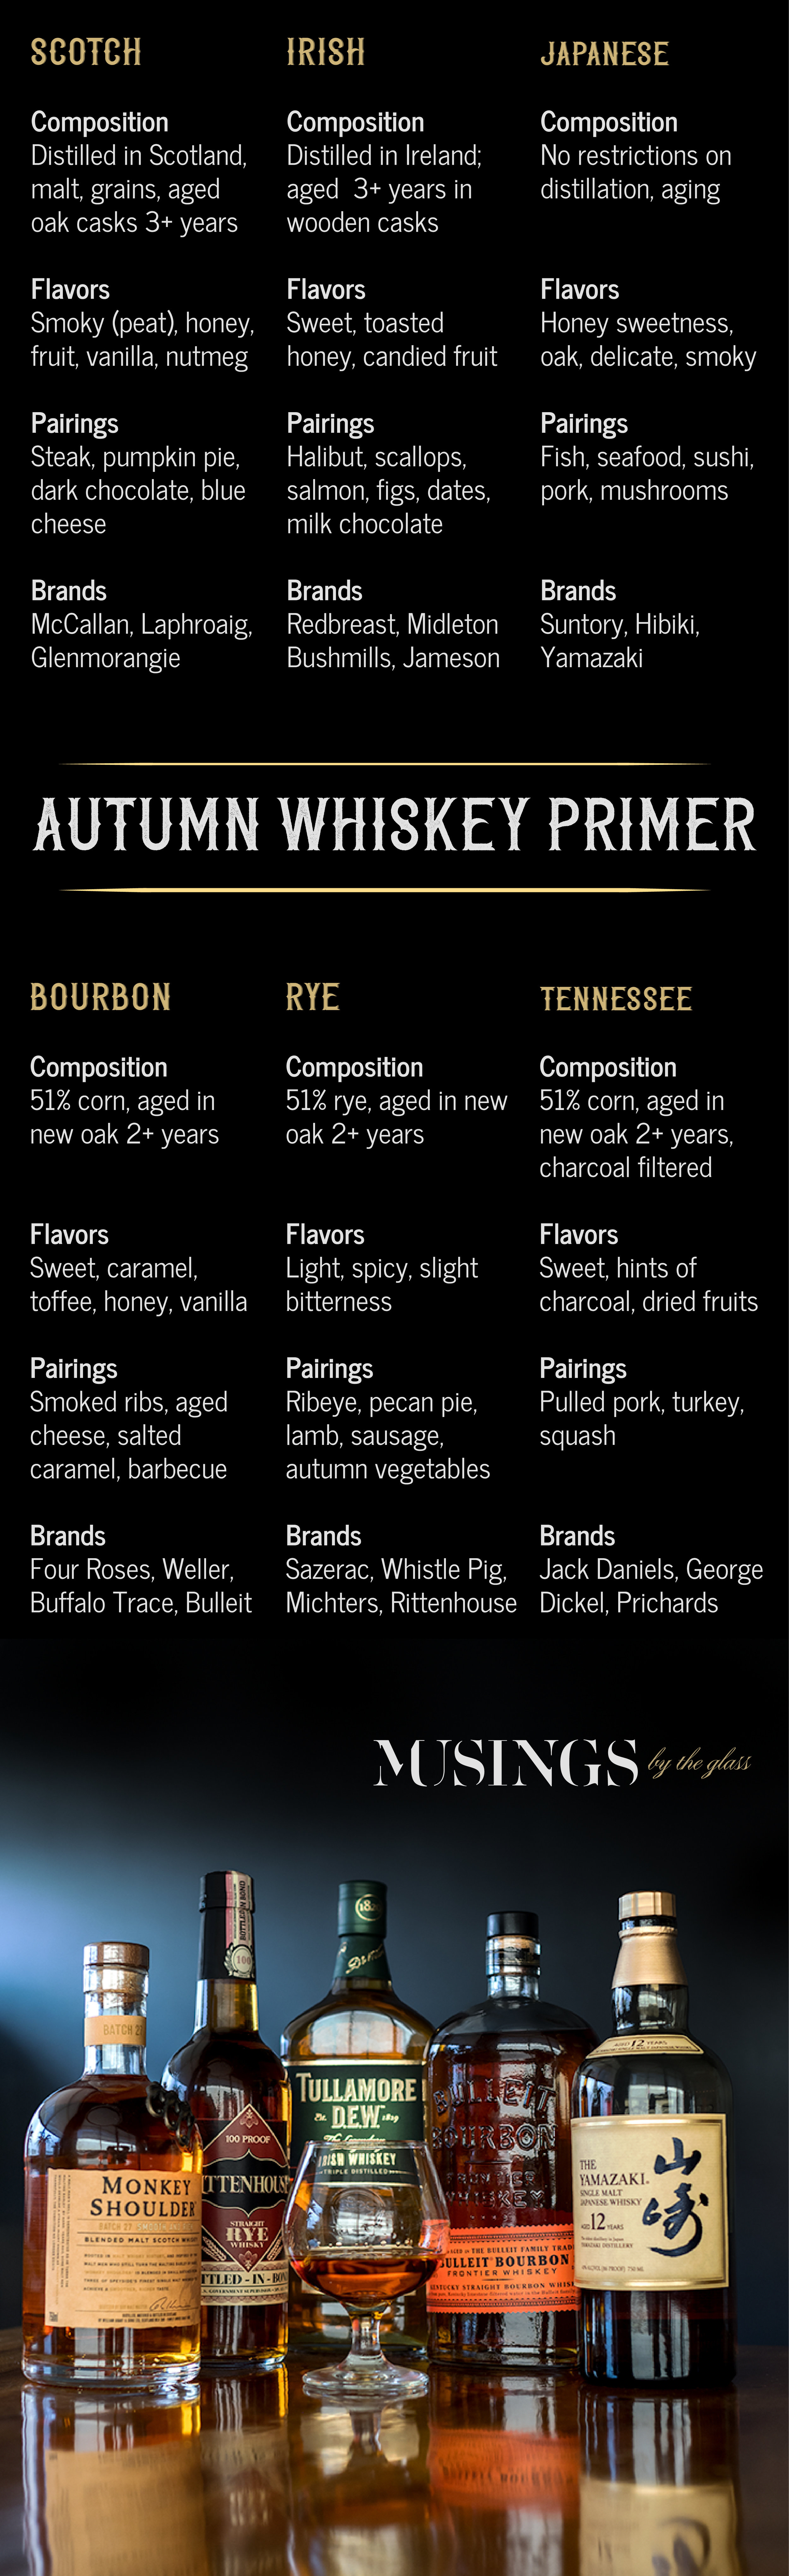 Musings by the Glass - Autumn Whiskey Primer - Whiskey Chart